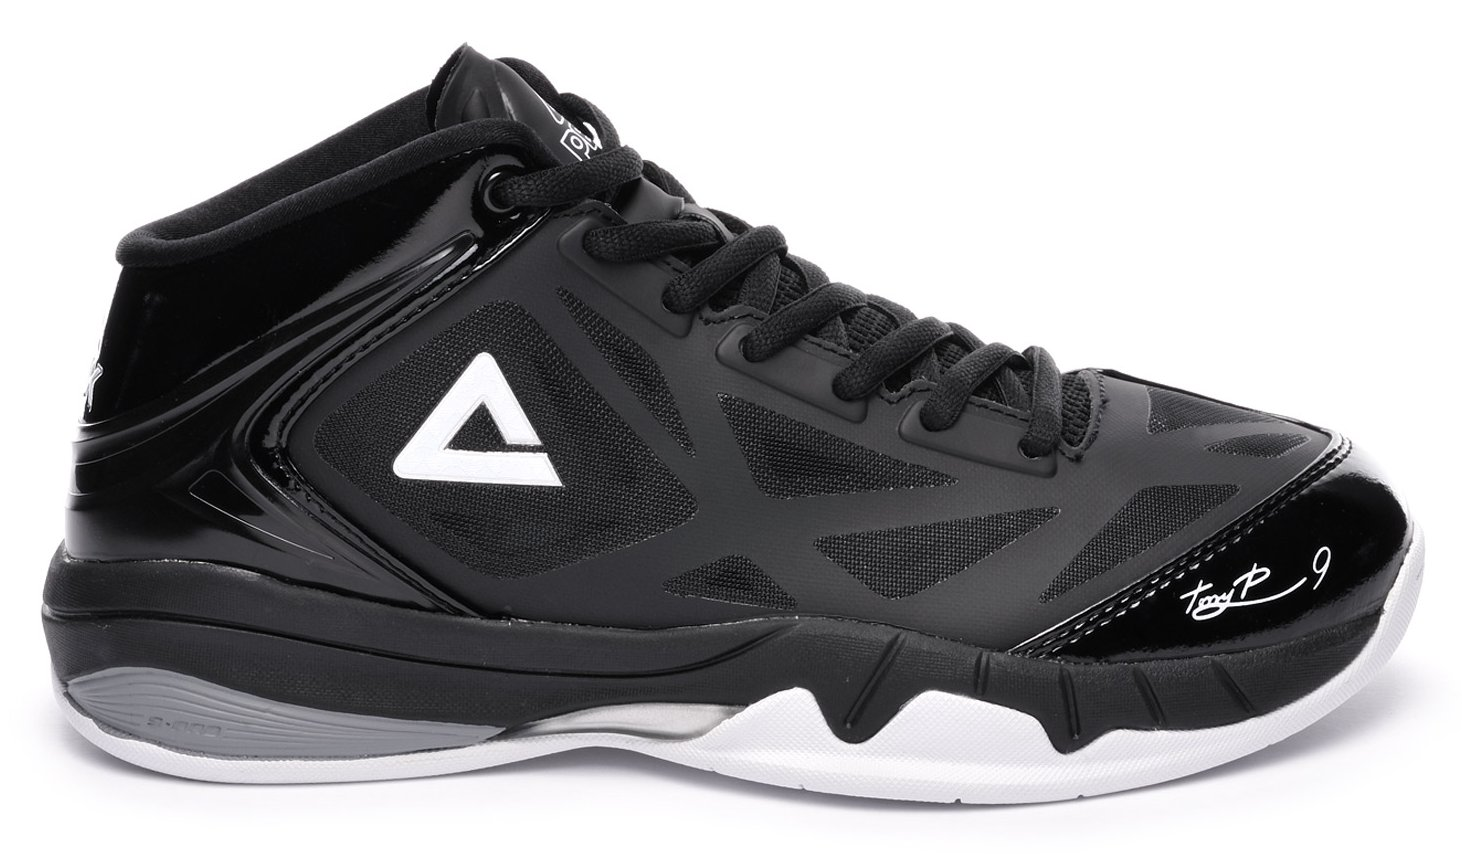 Acheter chaussures basketball pas cher - Basket adidas montant homme pas cher ...